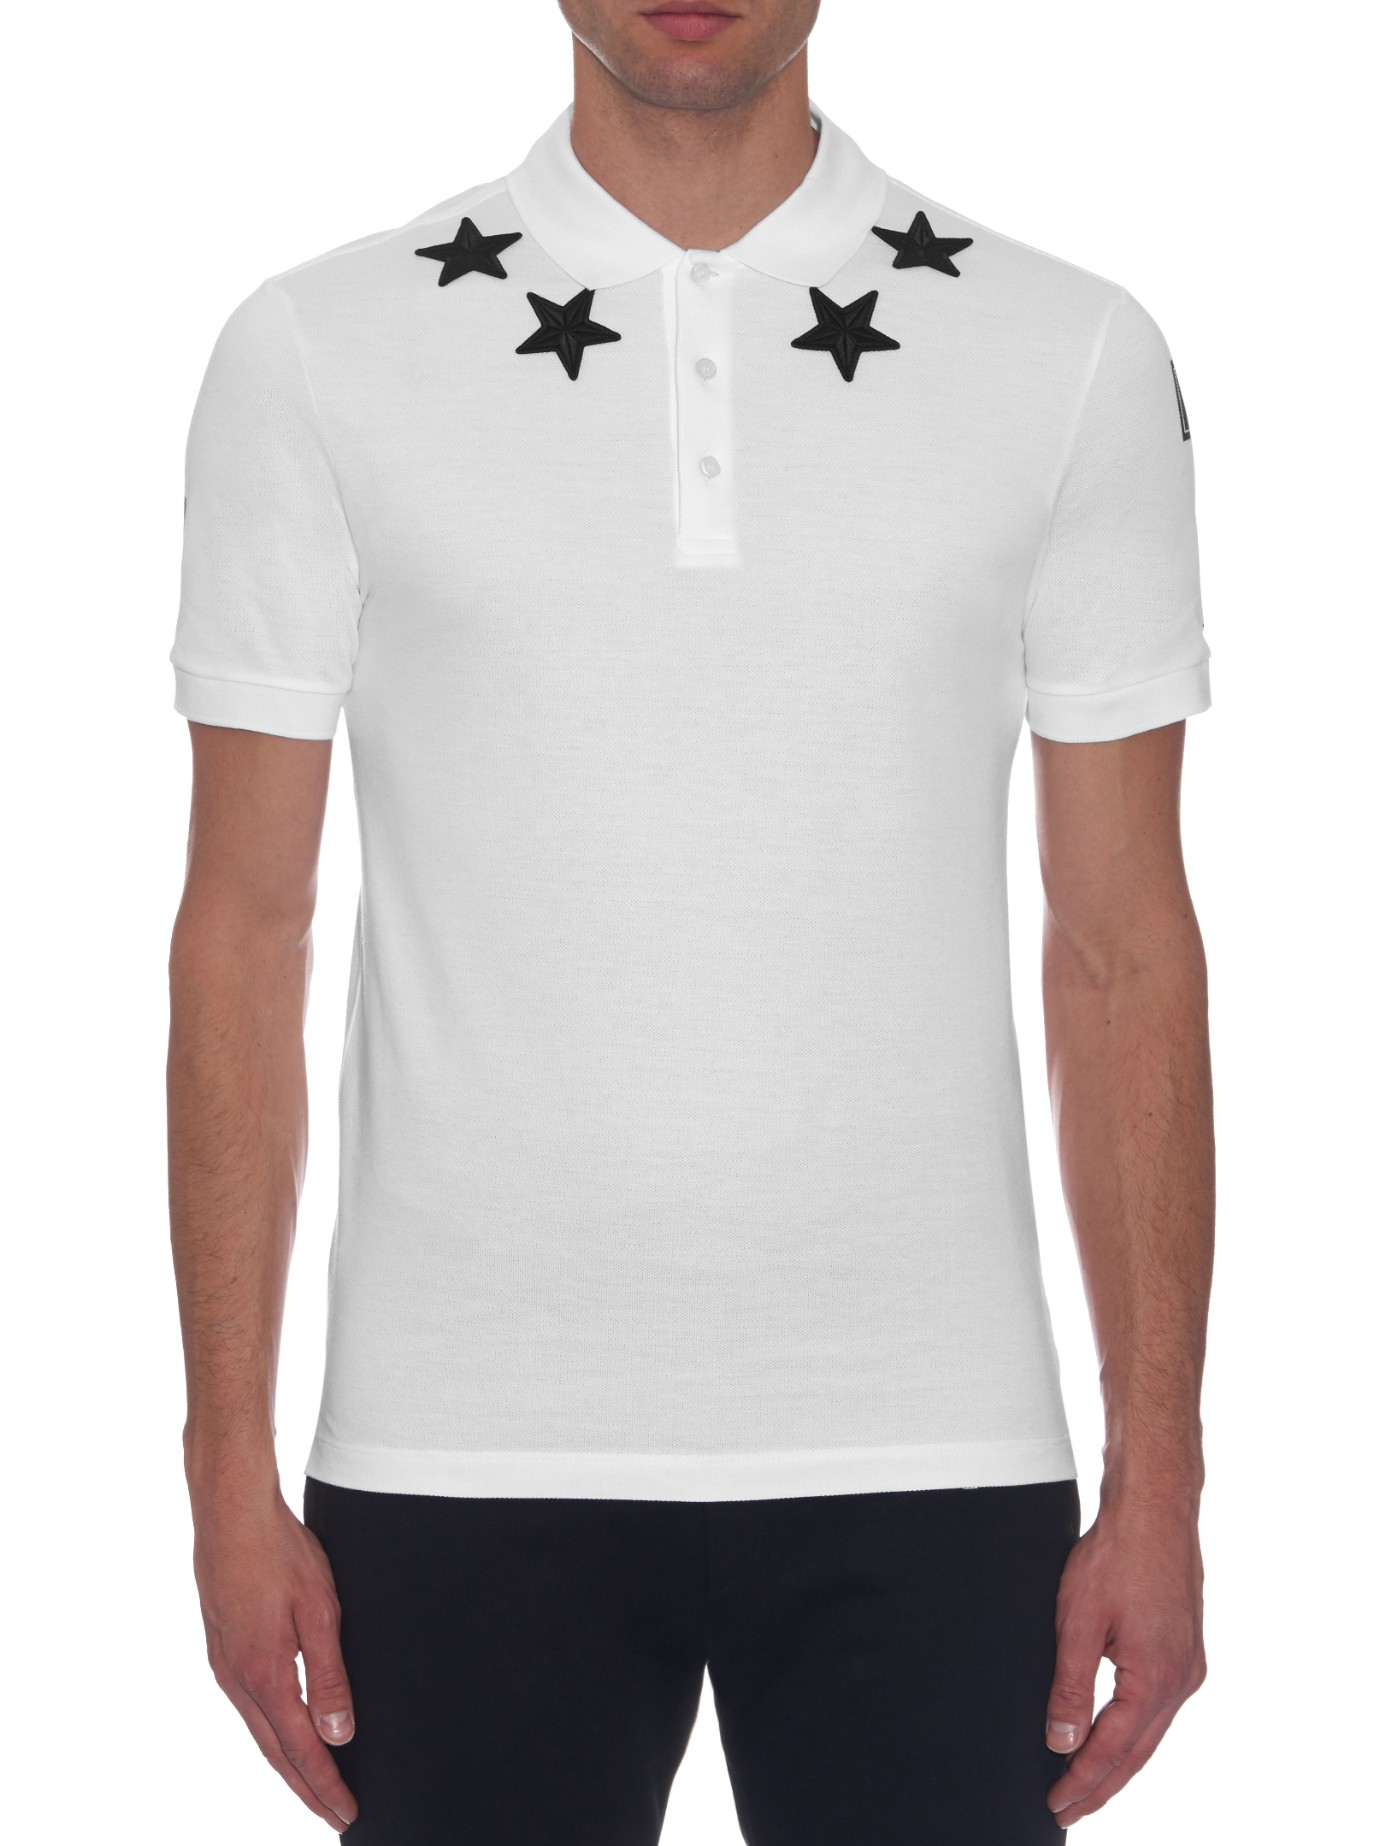 Givenchy cuban fit star patch polo shirt in white for men for Givenchy t shirt man